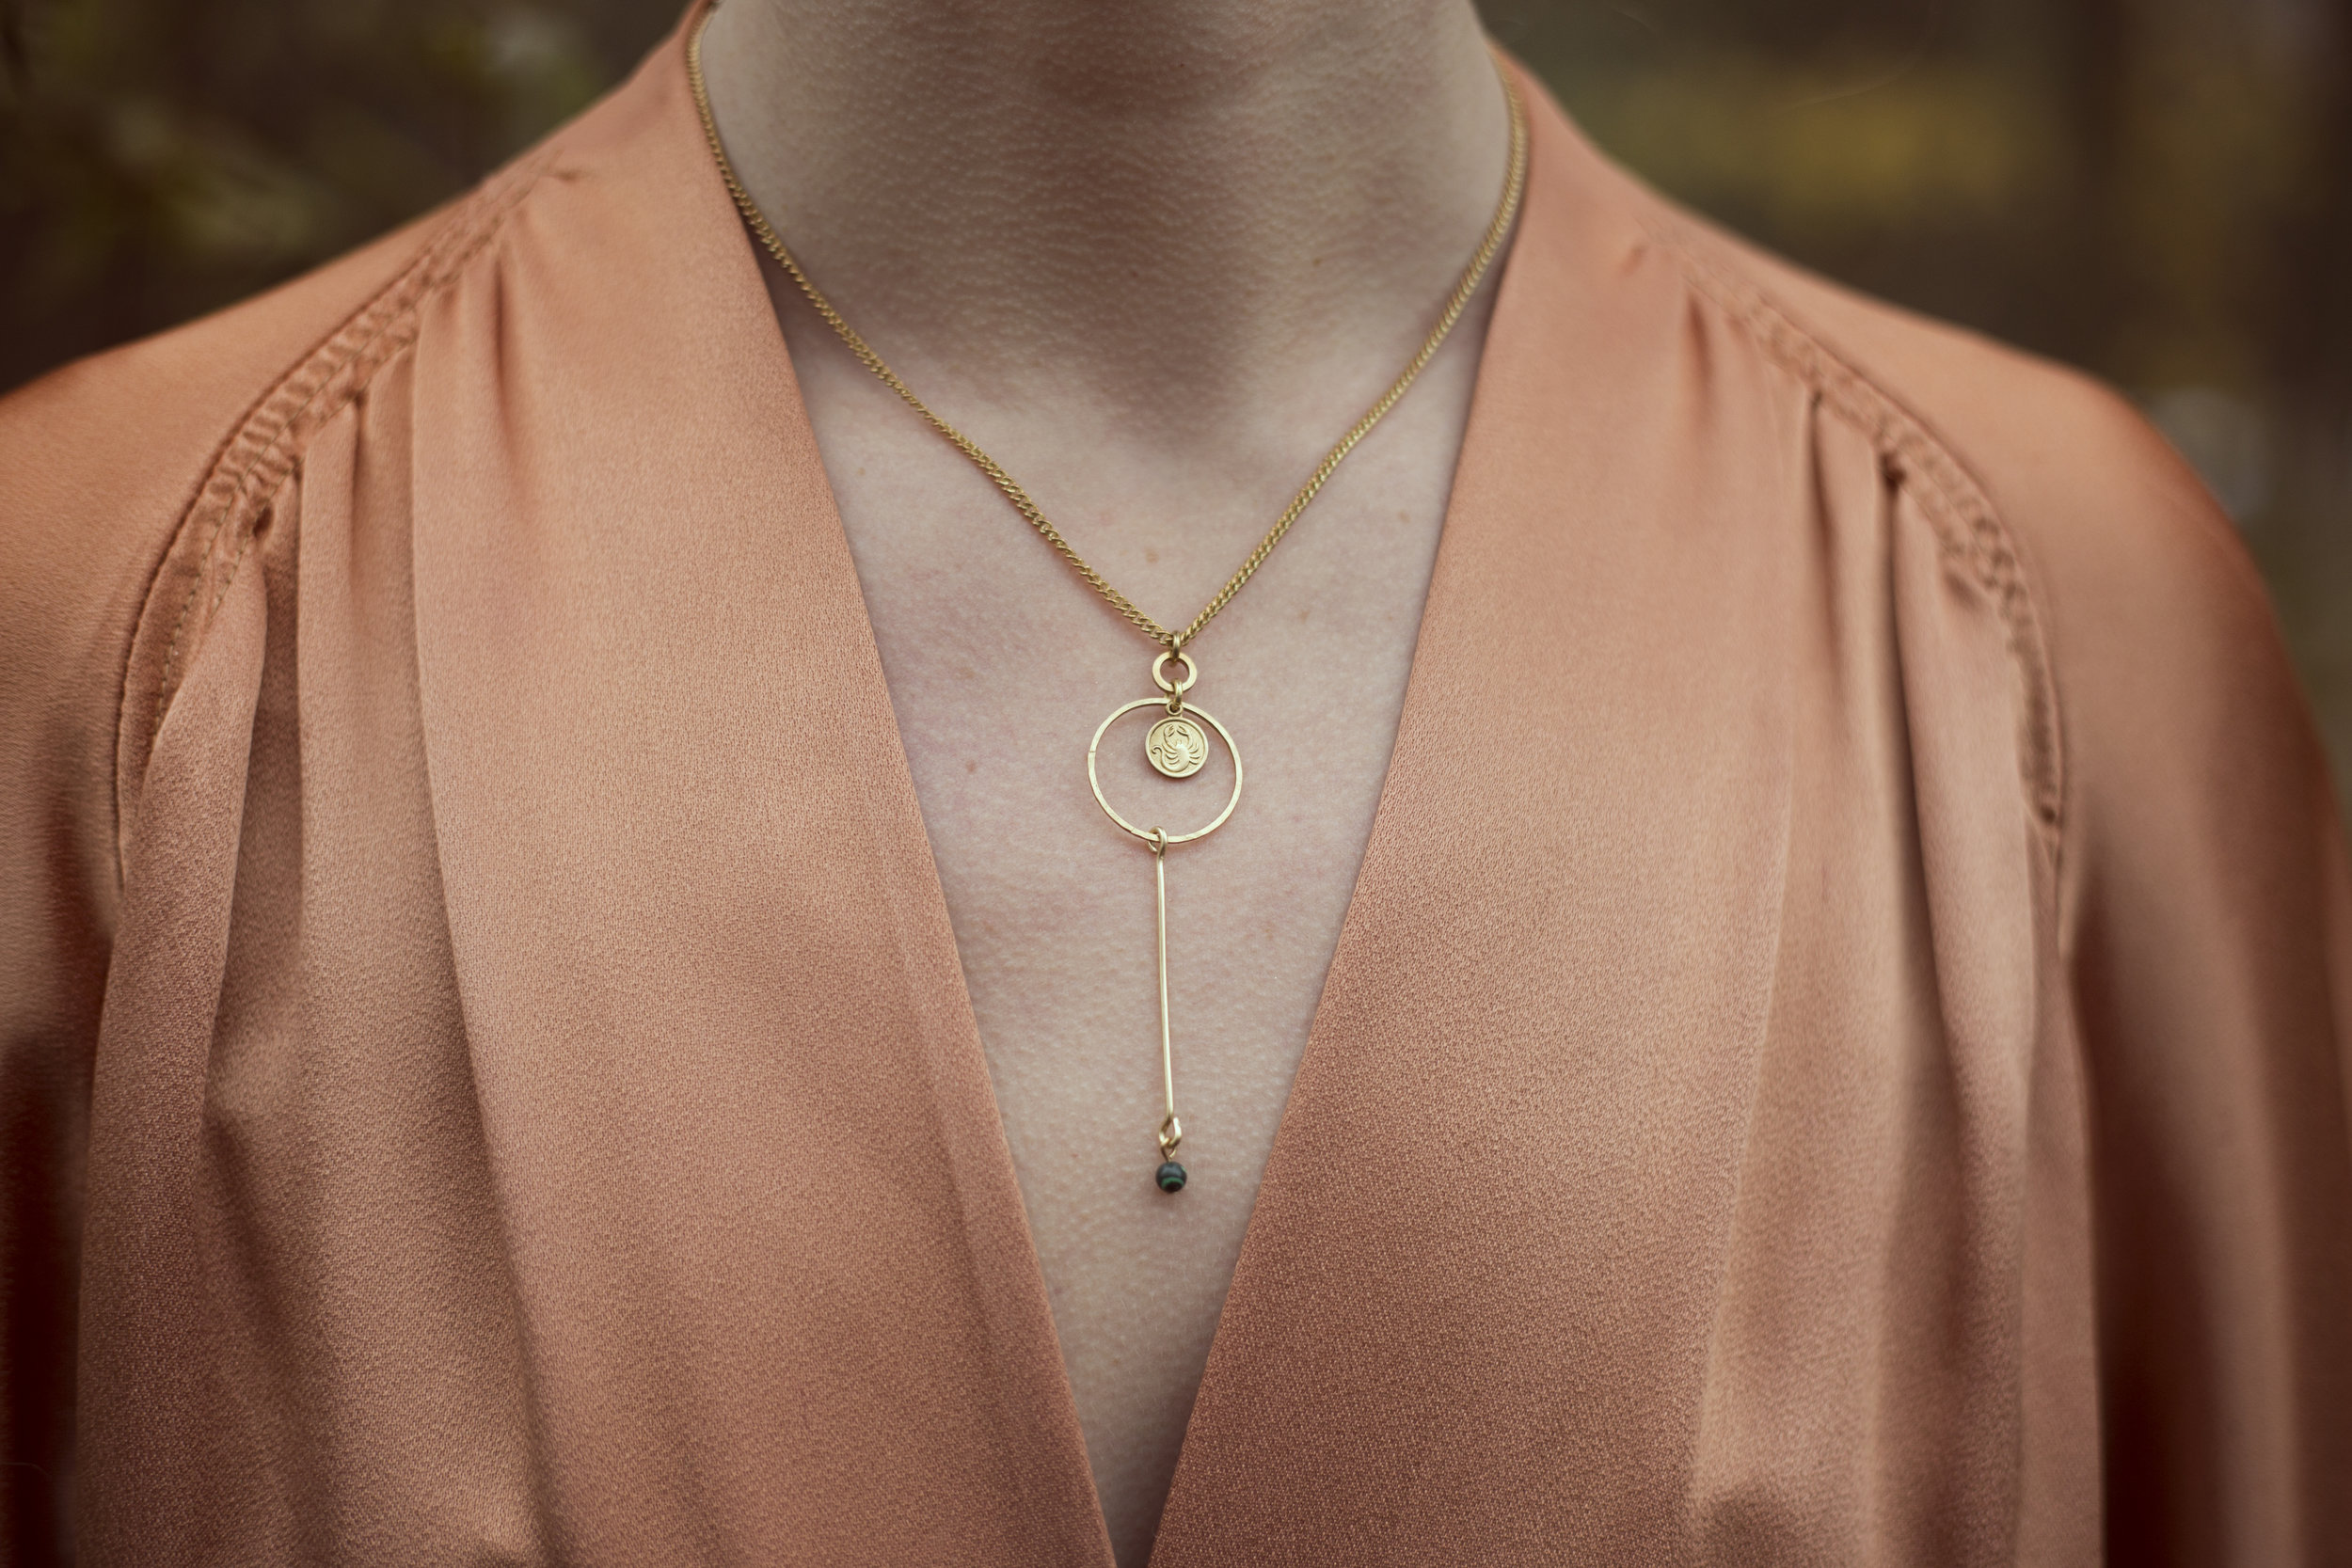 La Osa Jewelry and Vintage Clothing, Stratford, Ontario, Canada